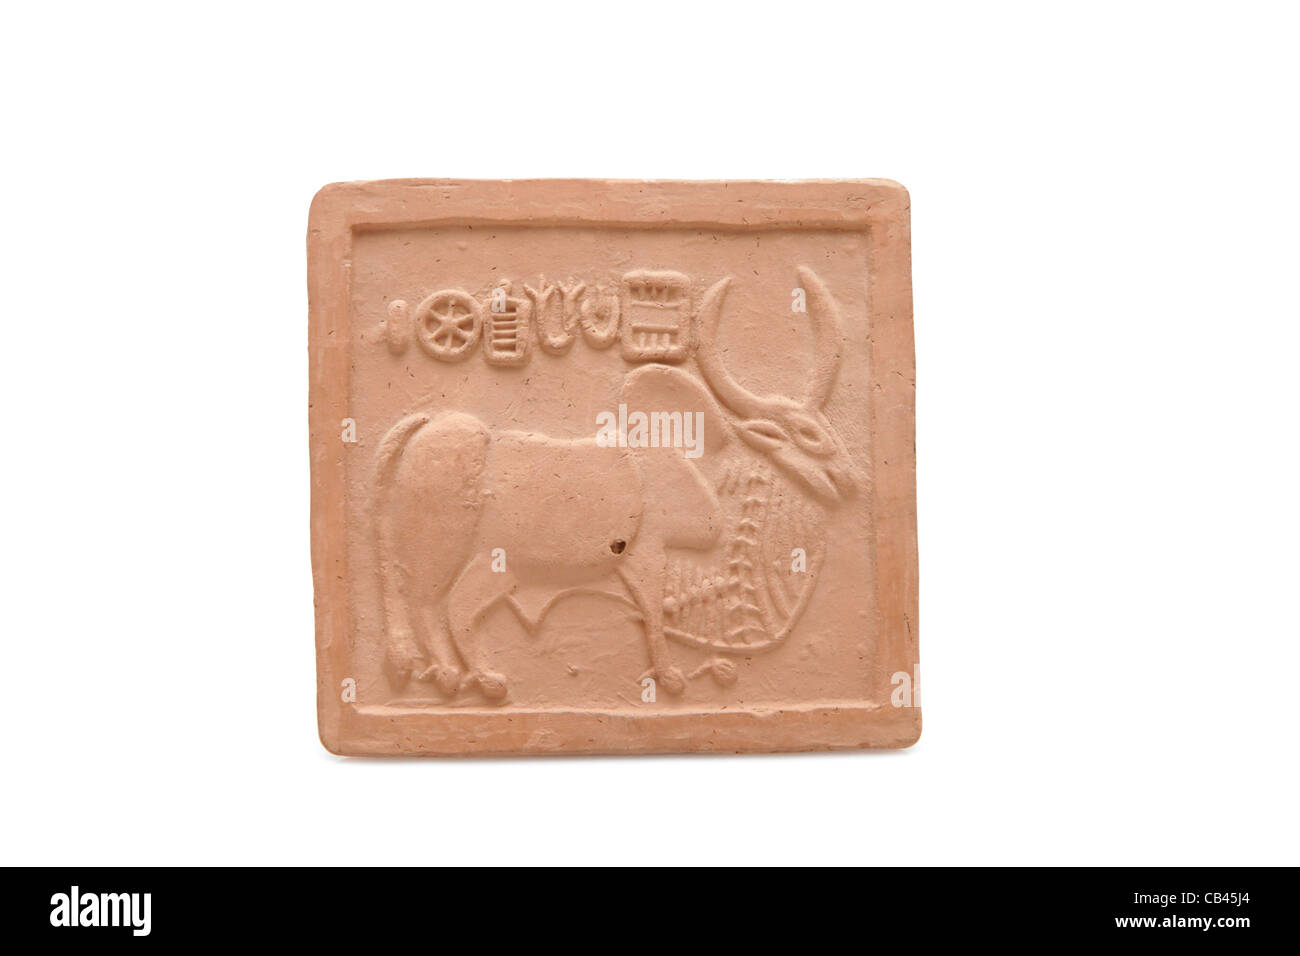 Ancient Pictograph from the Indus Valley Civilization - Stock Image